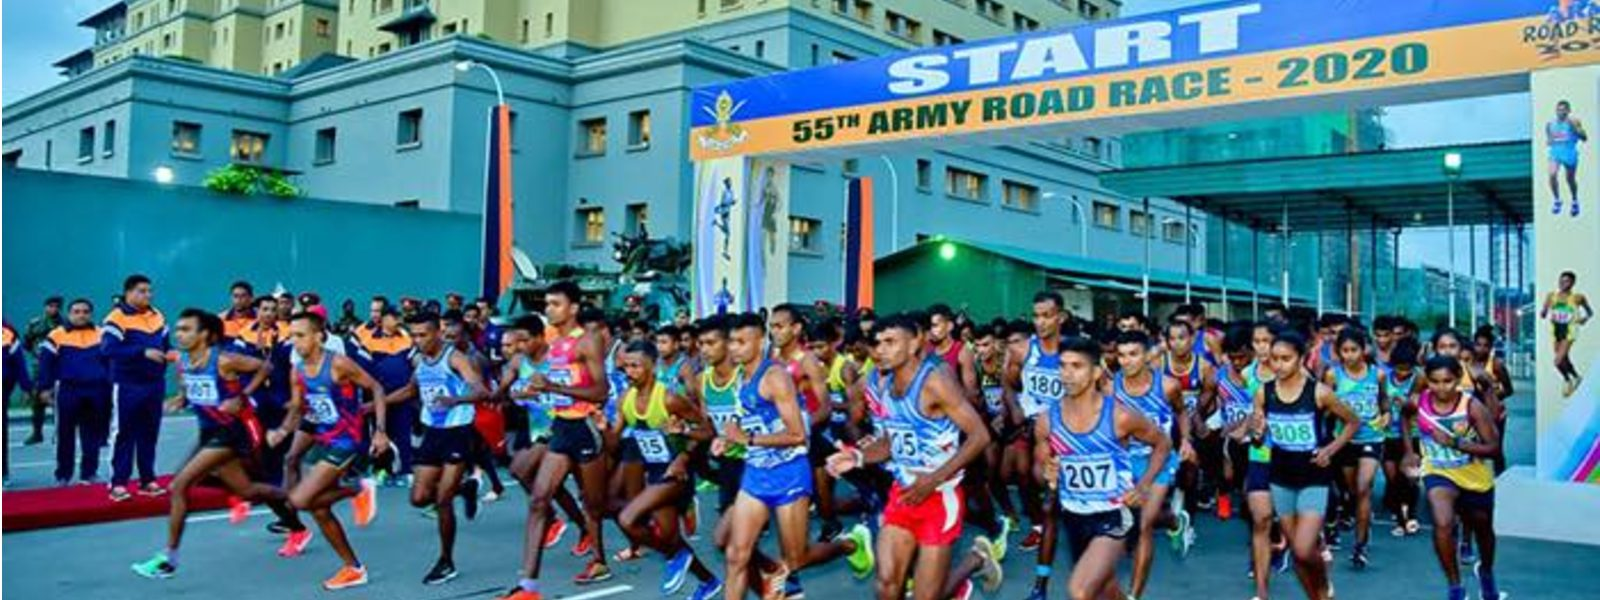 Artillery & Women Corps win overall championships at Army Road Race – 2020